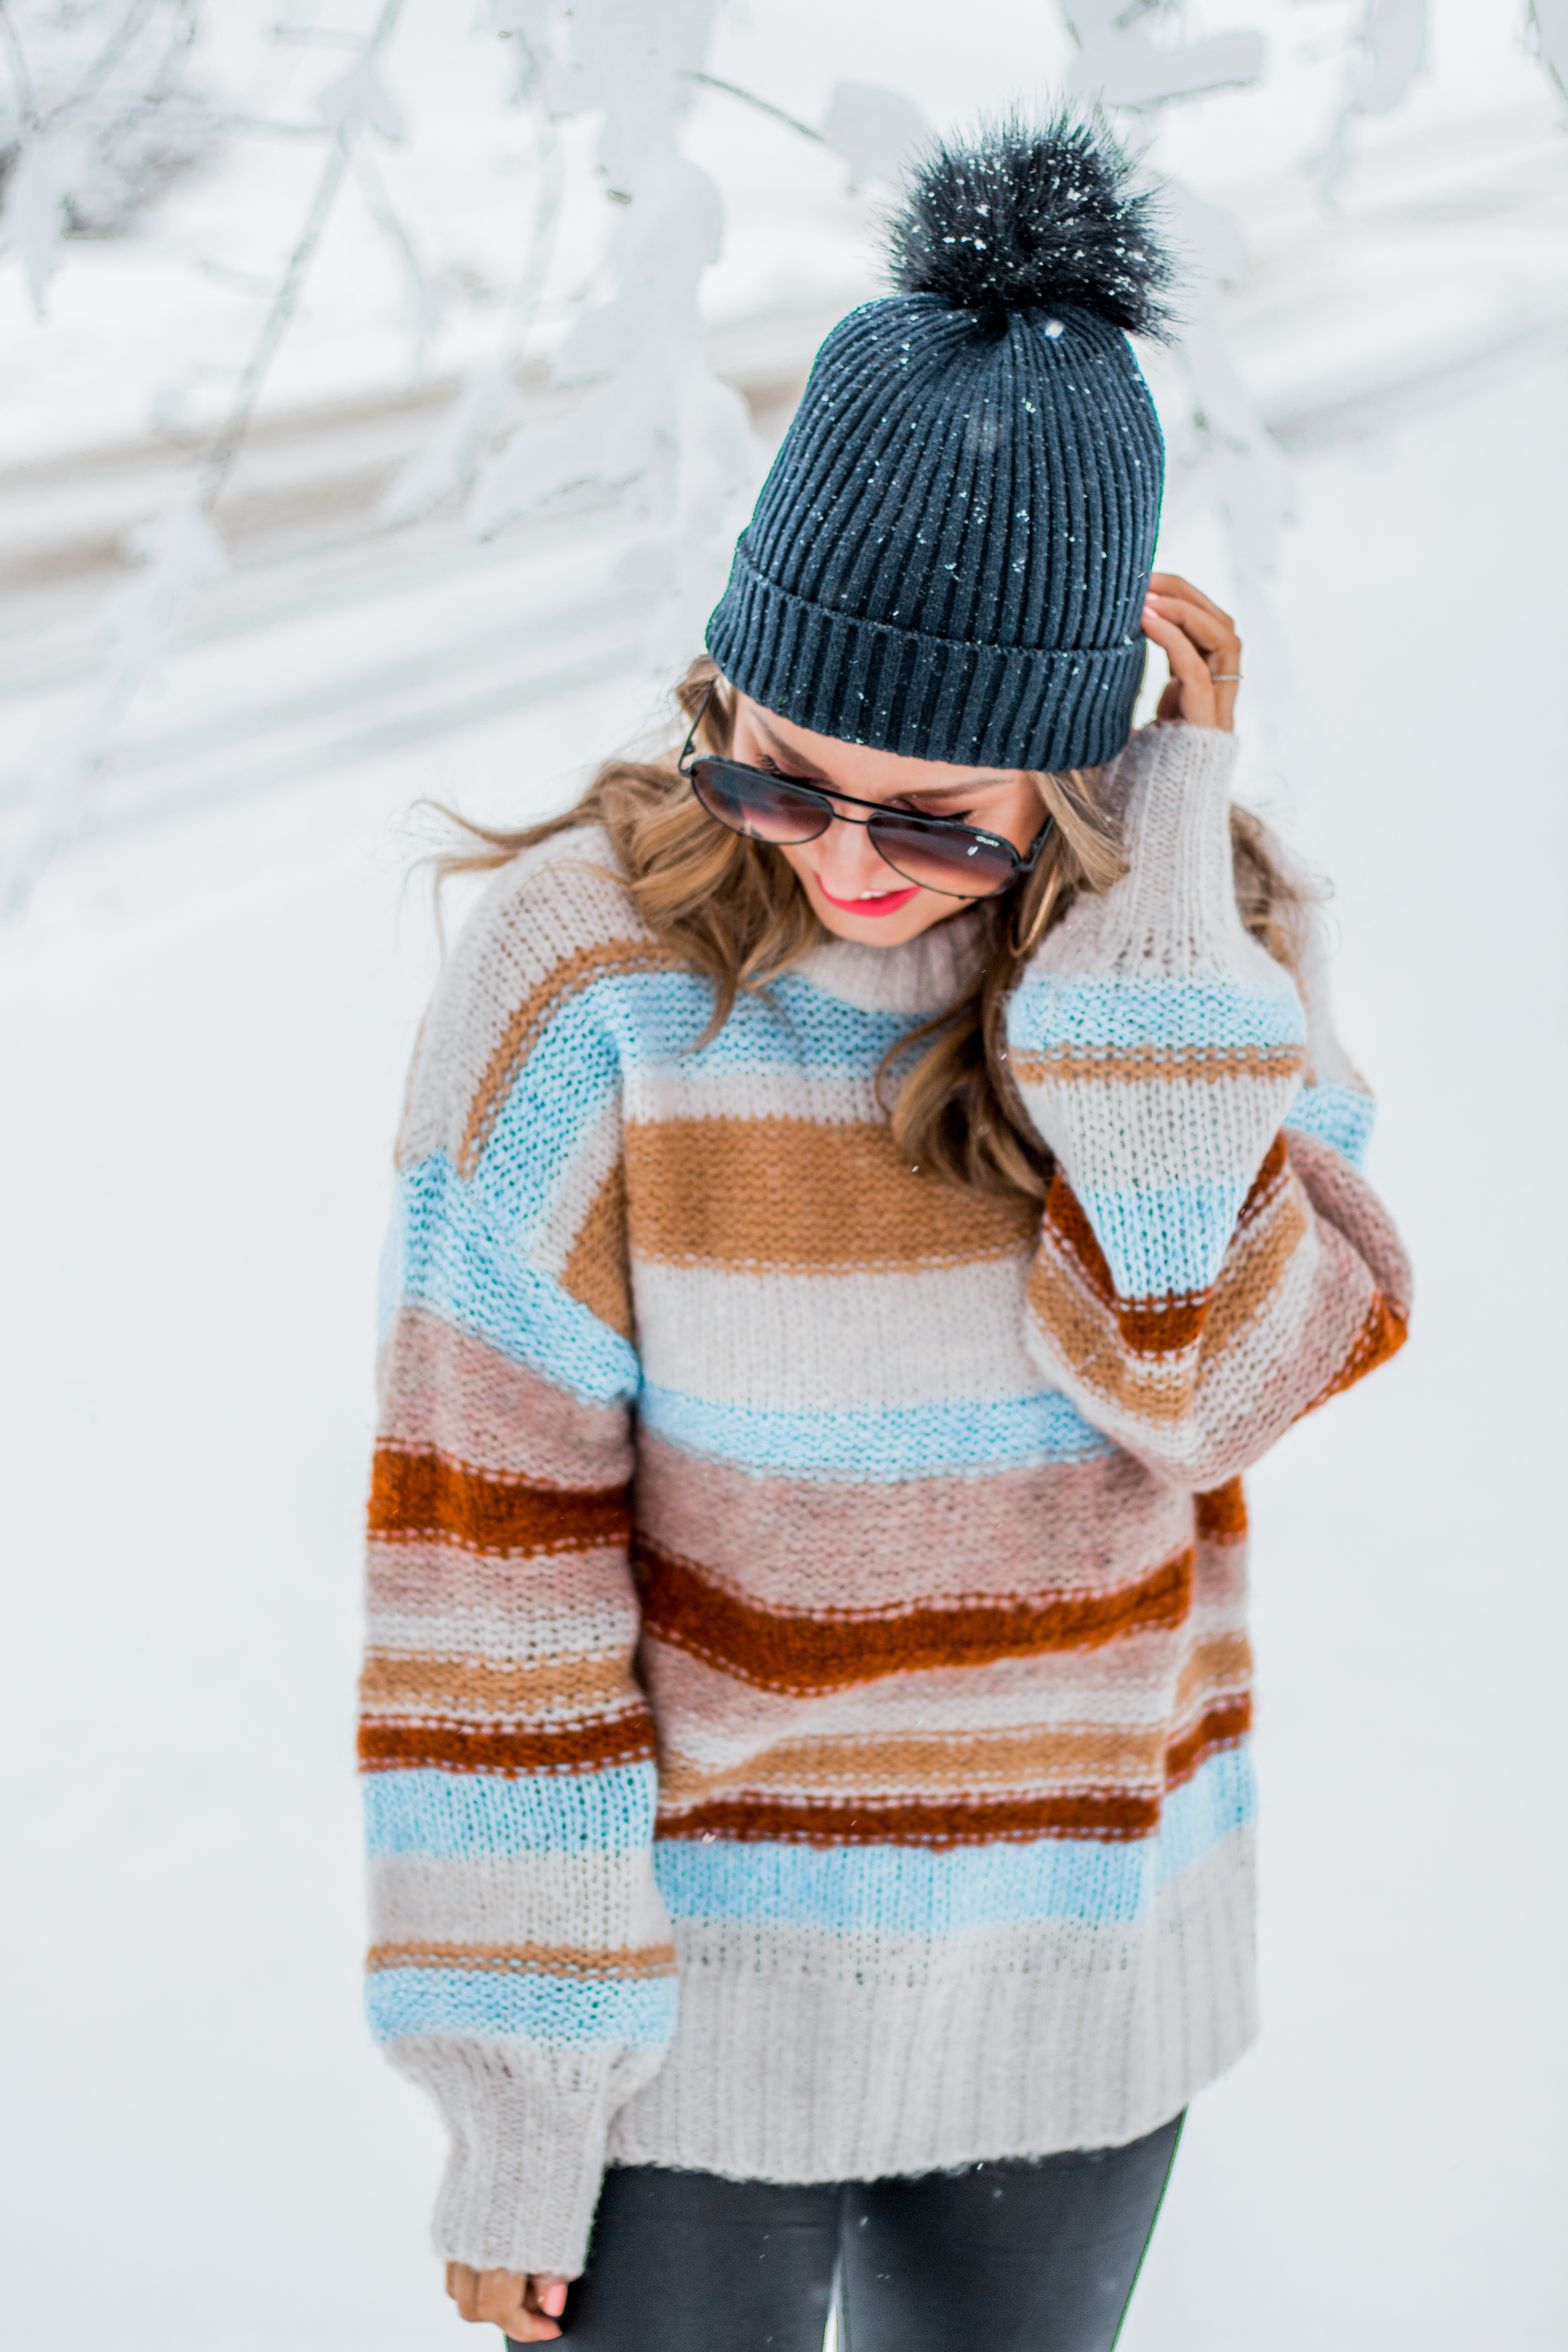 Women's Fashion - American Eagle Sweater - Hunter Boots - Beanie - Snow Day - OOTD - Fashion Blogger - Winter Fashion - 10